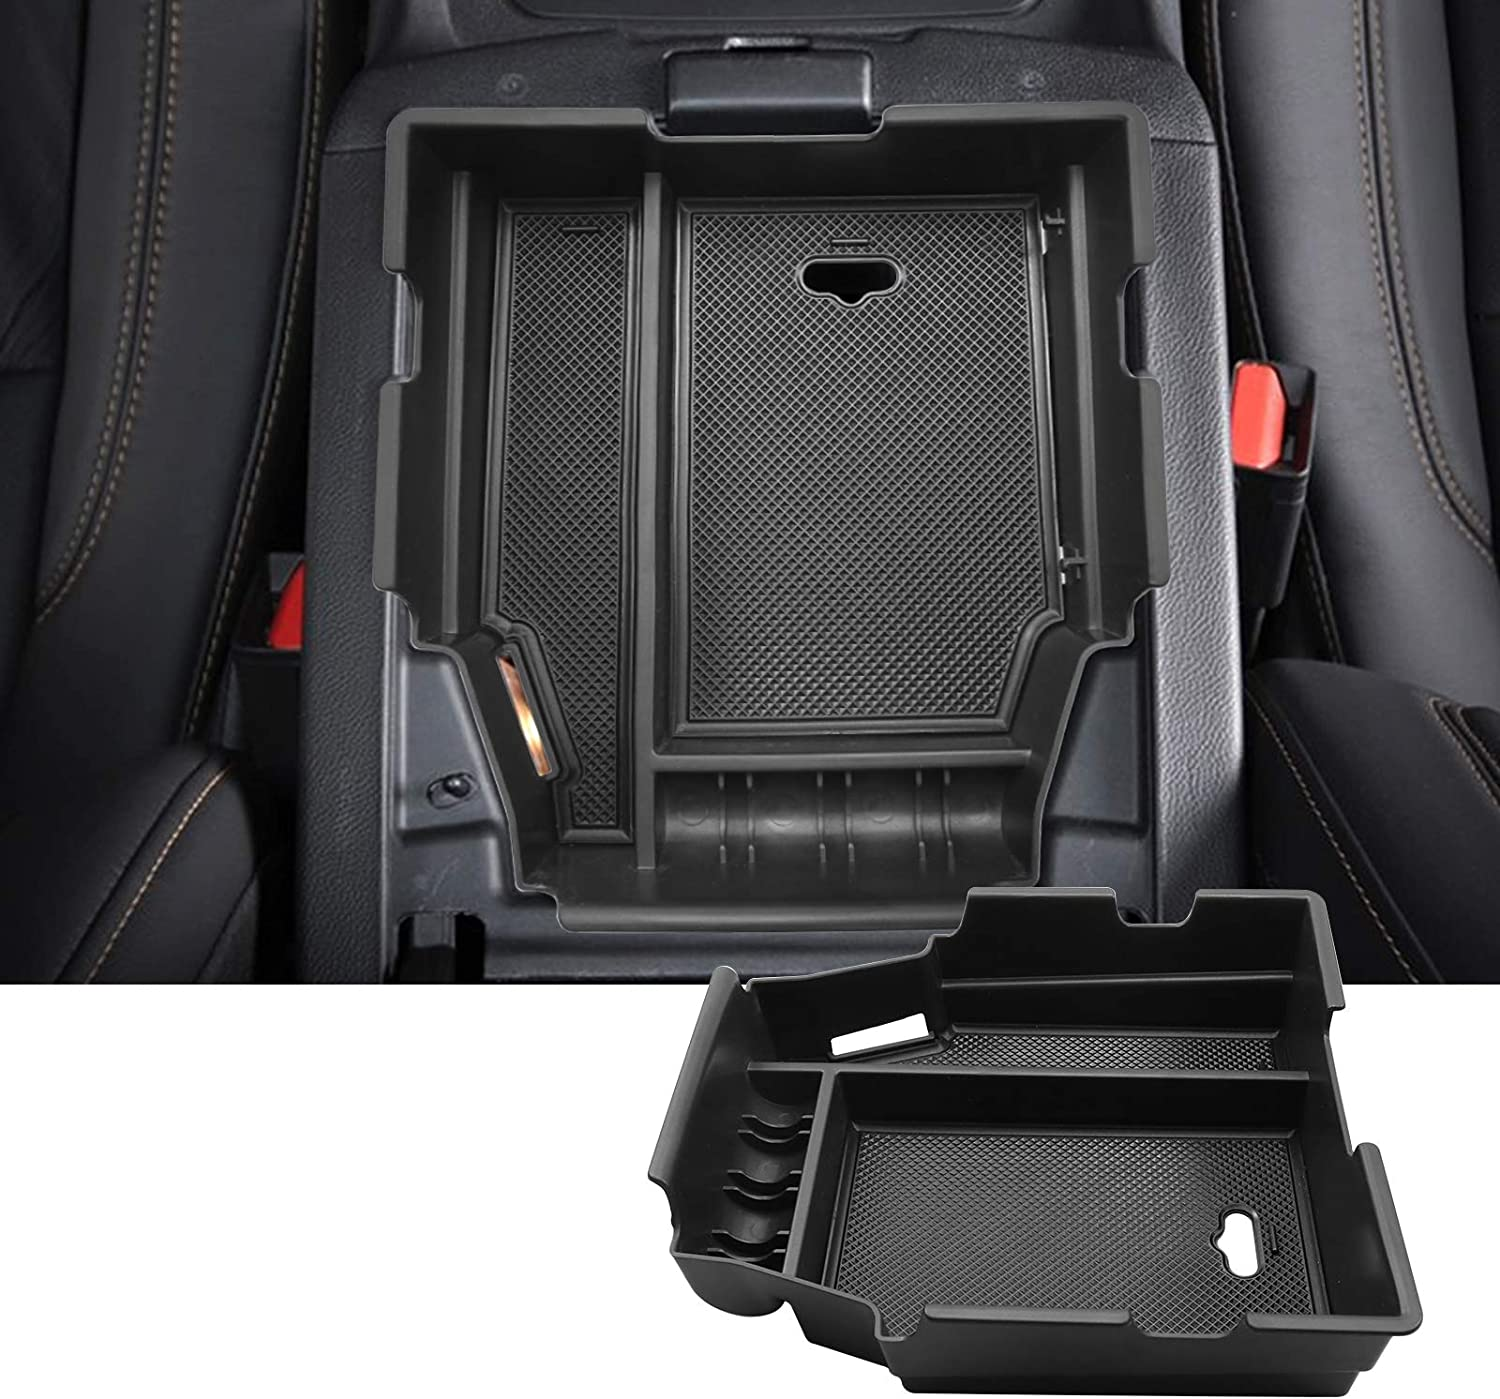 White SKTU Center Console Organizer Compatible with 2019 2020 Traverse Accessories Insert ABS Black Materials Tray Armrest Secondary Storage Box with Coin and Glass Holder